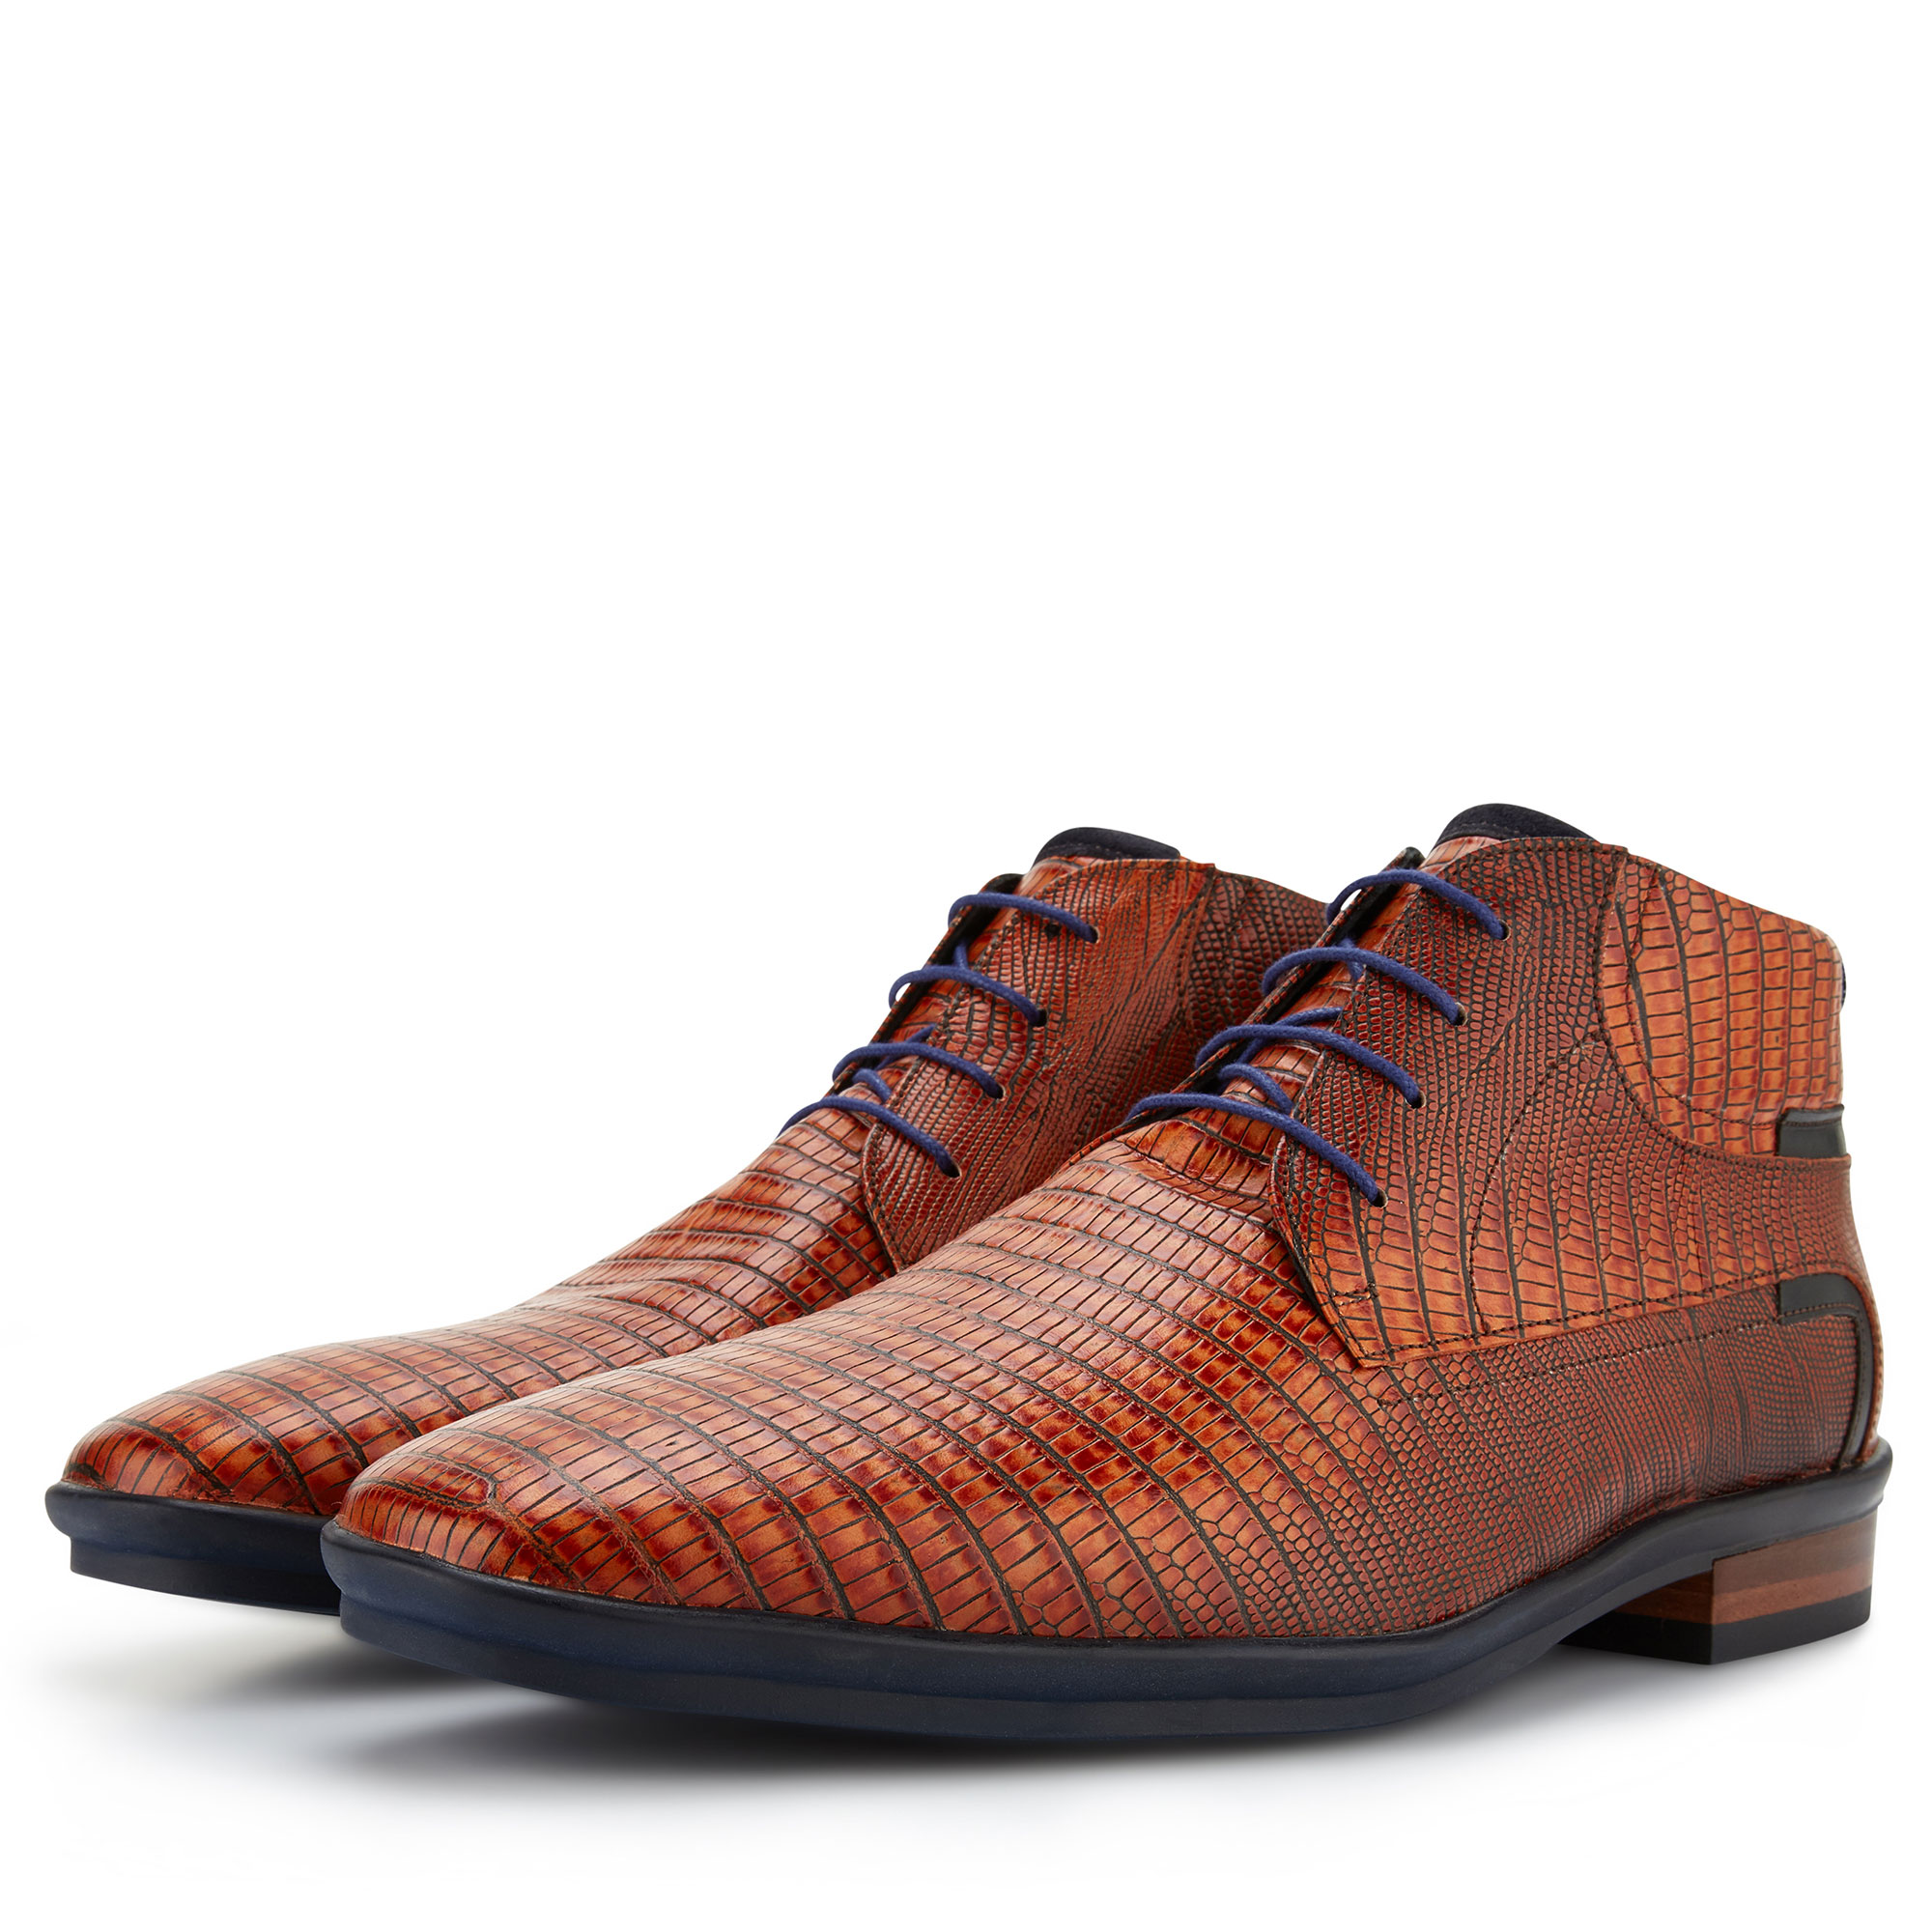 10879/00 - Cognac lizardprint veterboot